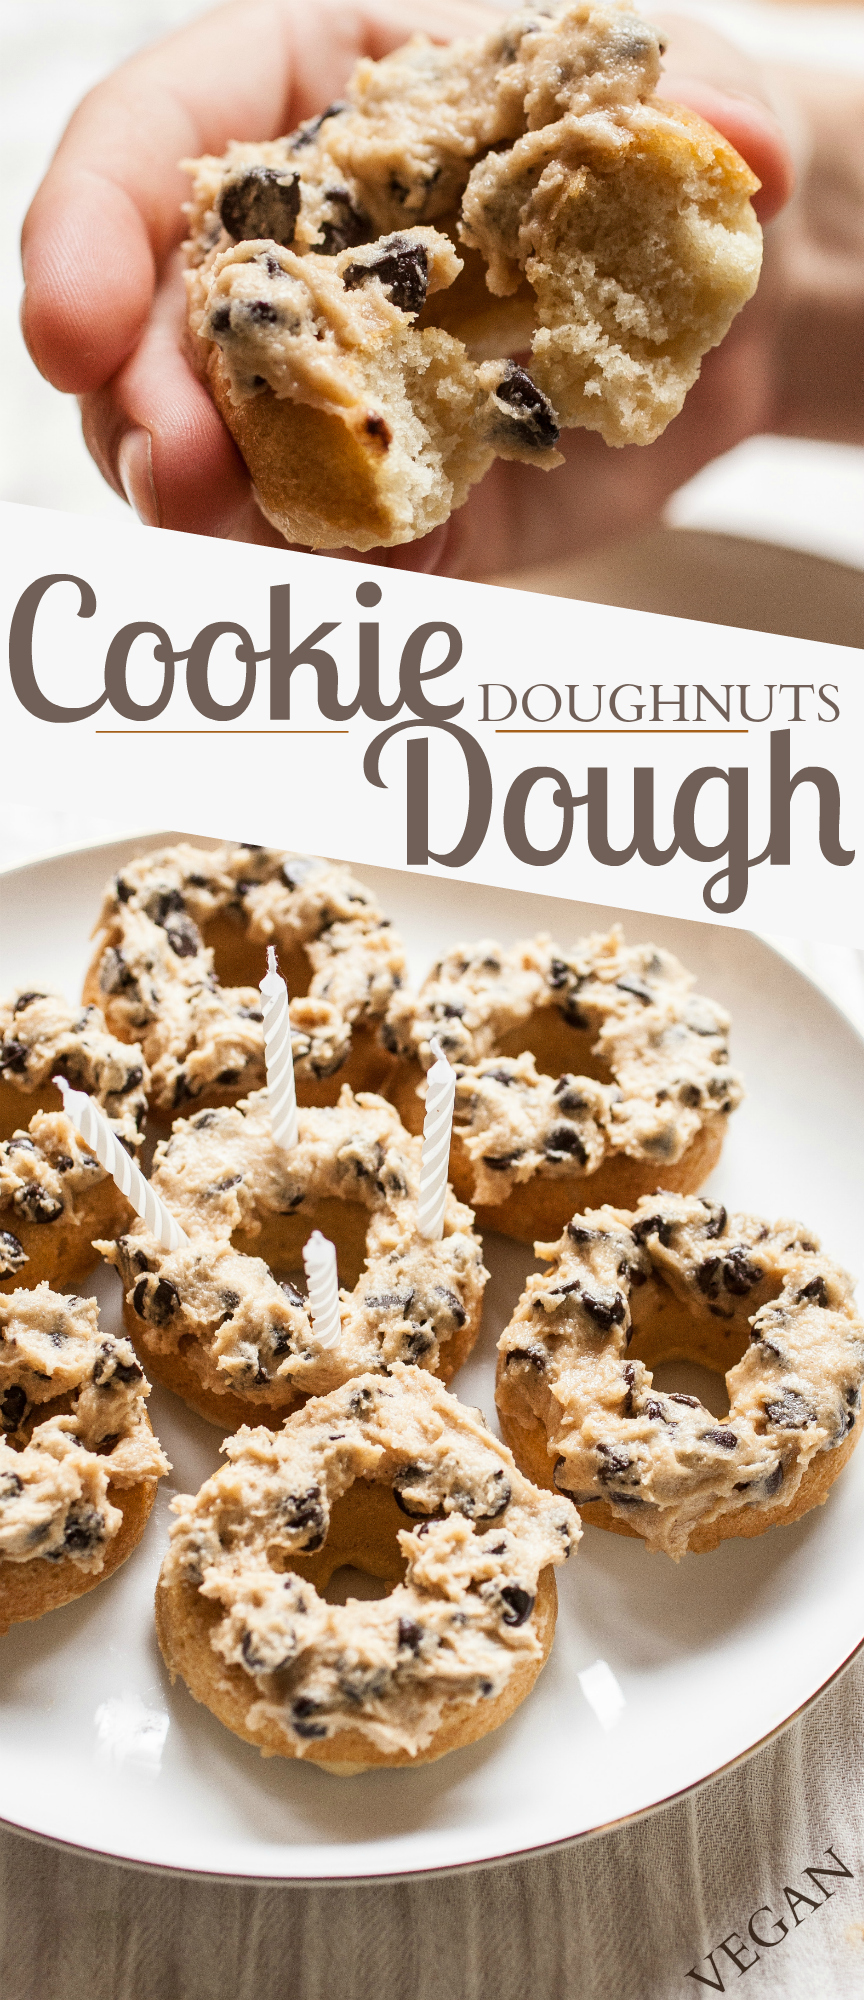 Produce On Parade - Cookie Dough Doughnuts - A fluffy, perfectly textured vanilla doughnut layered high with creamy and delicious cookie dough. Super decadent and sure to be a huge hit!